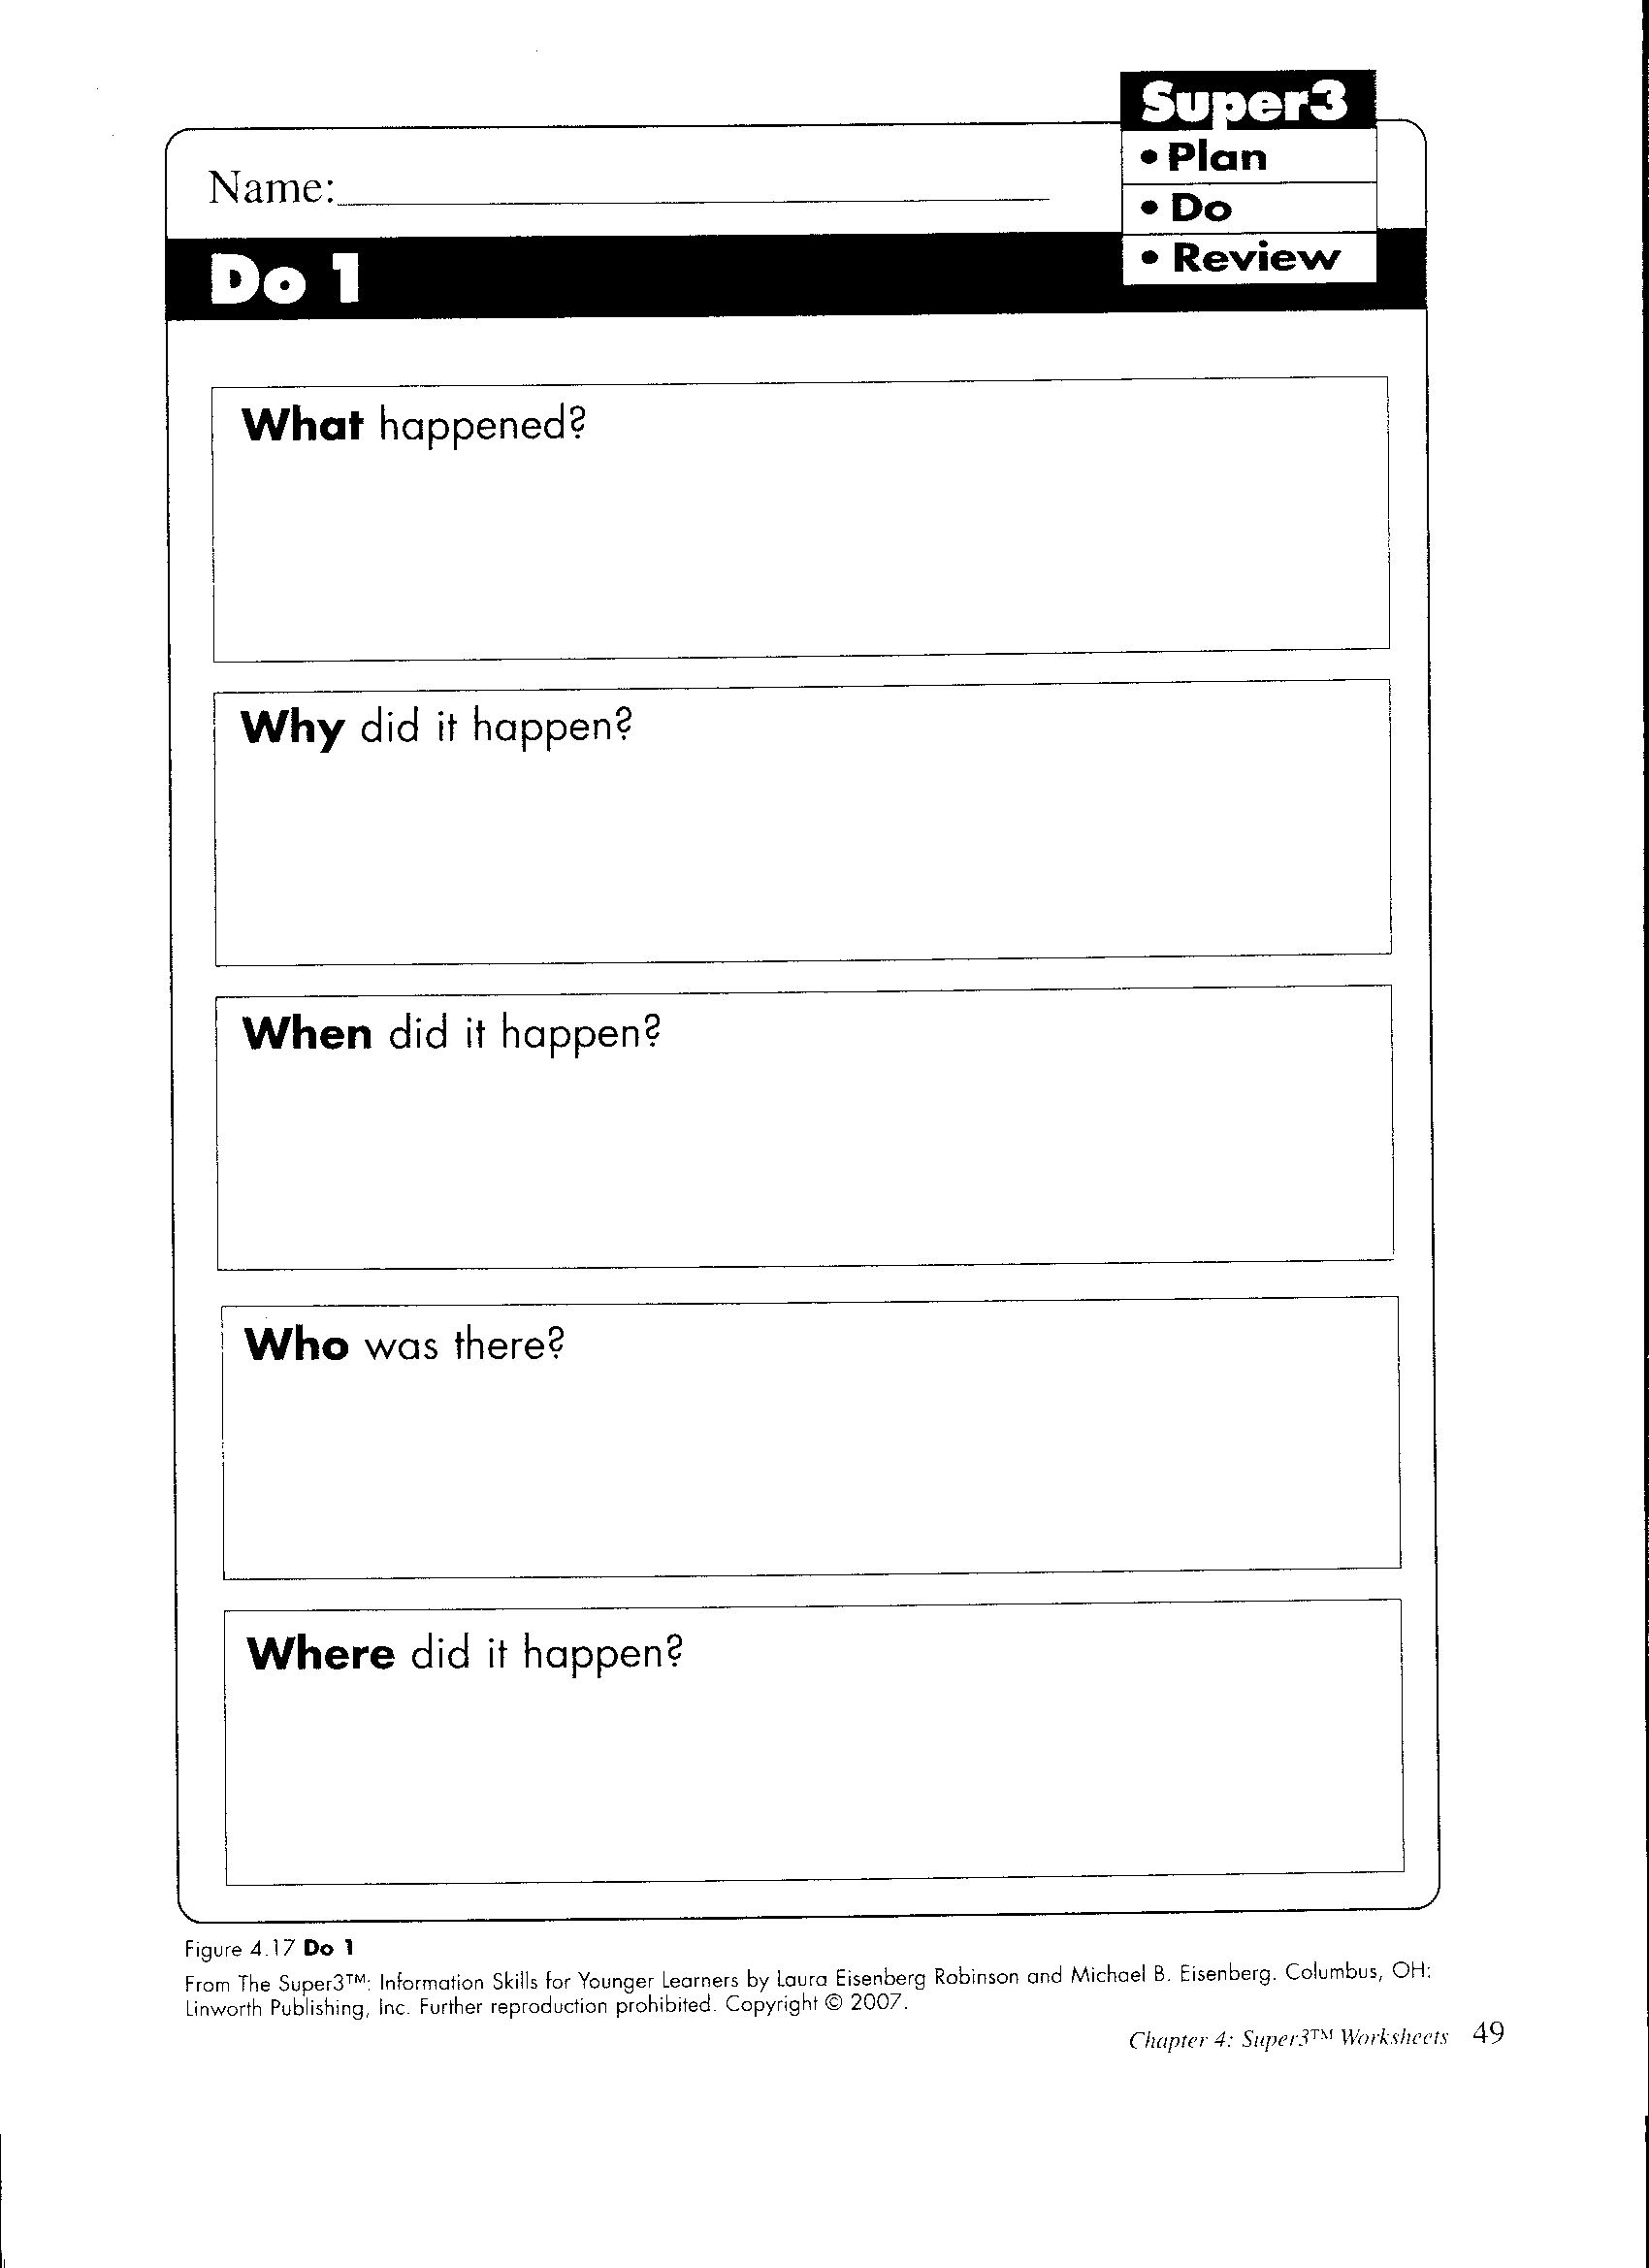 Wh Worksheet Super3 P49